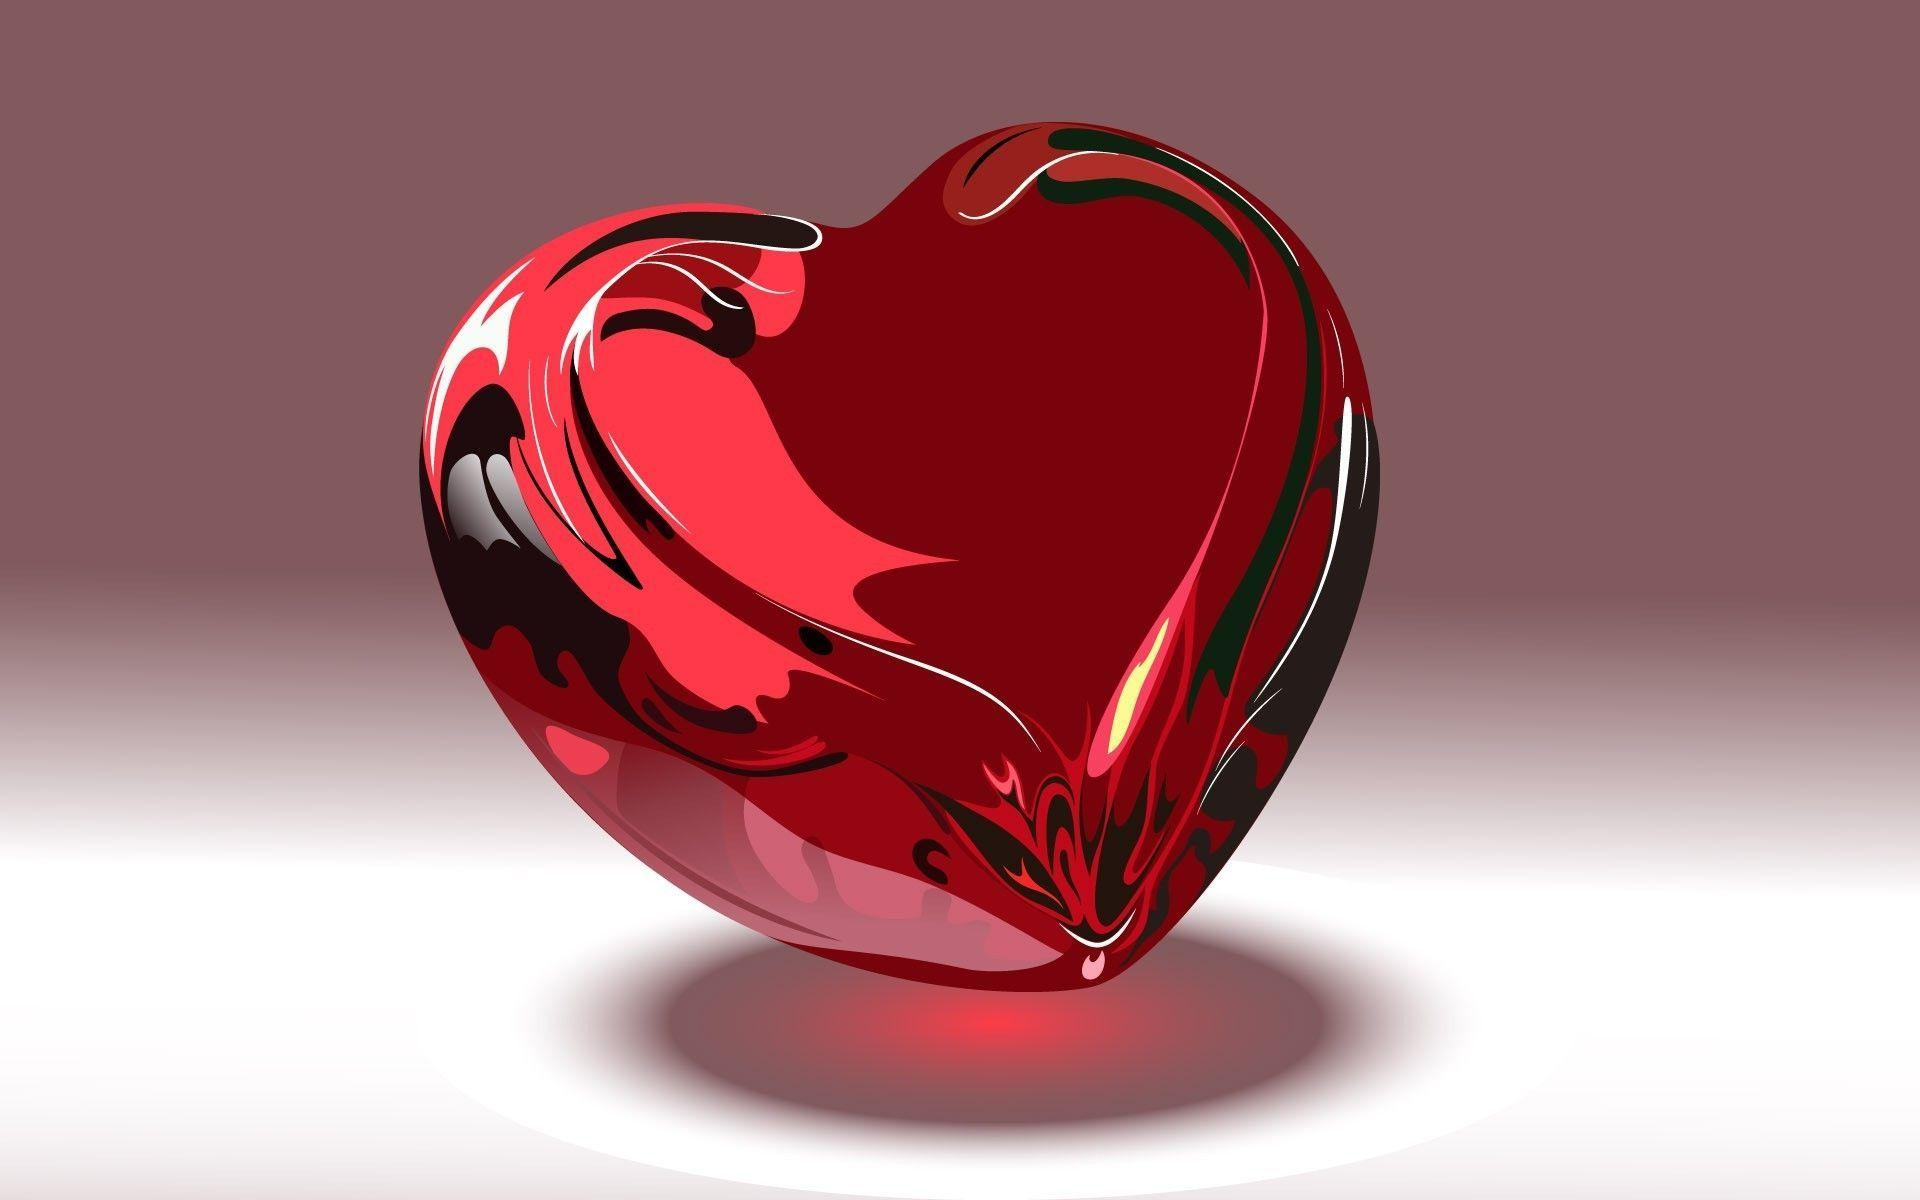 Love Heart Wallpaper Background 3d : Love Wallpapers 3D - Wallpaper cave